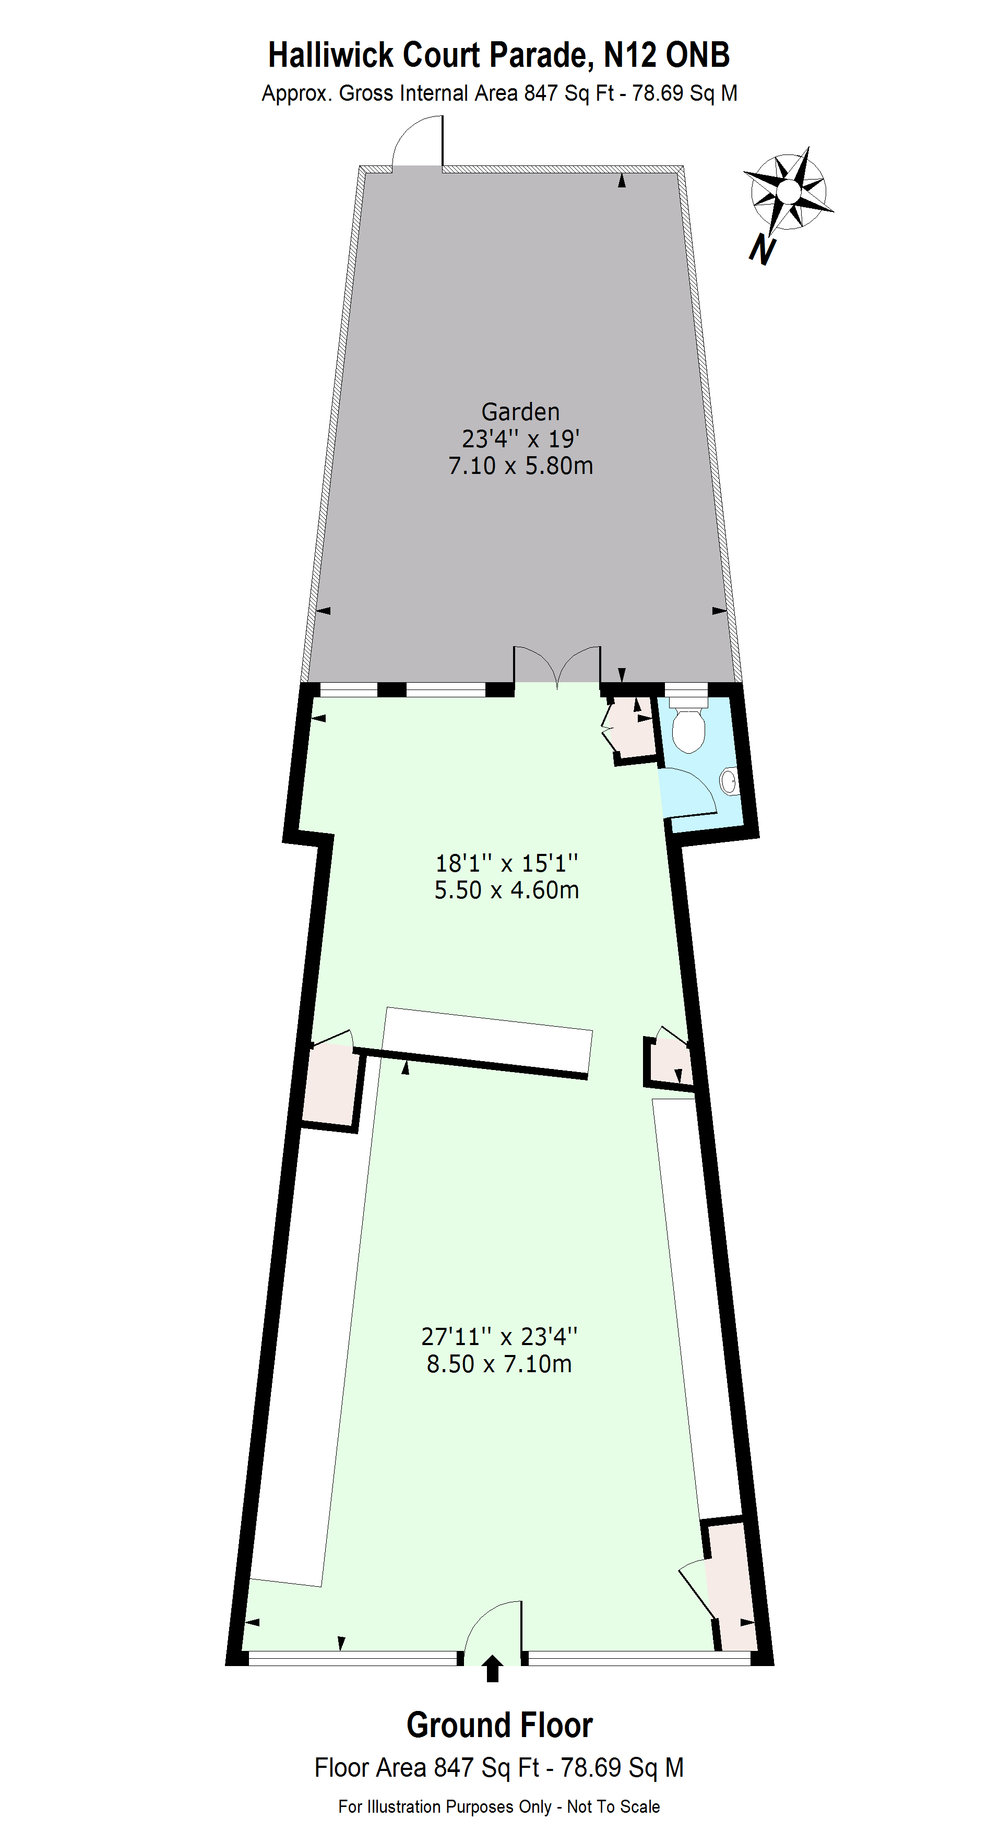 Floor Plan for Halliwick Court Parade, N12